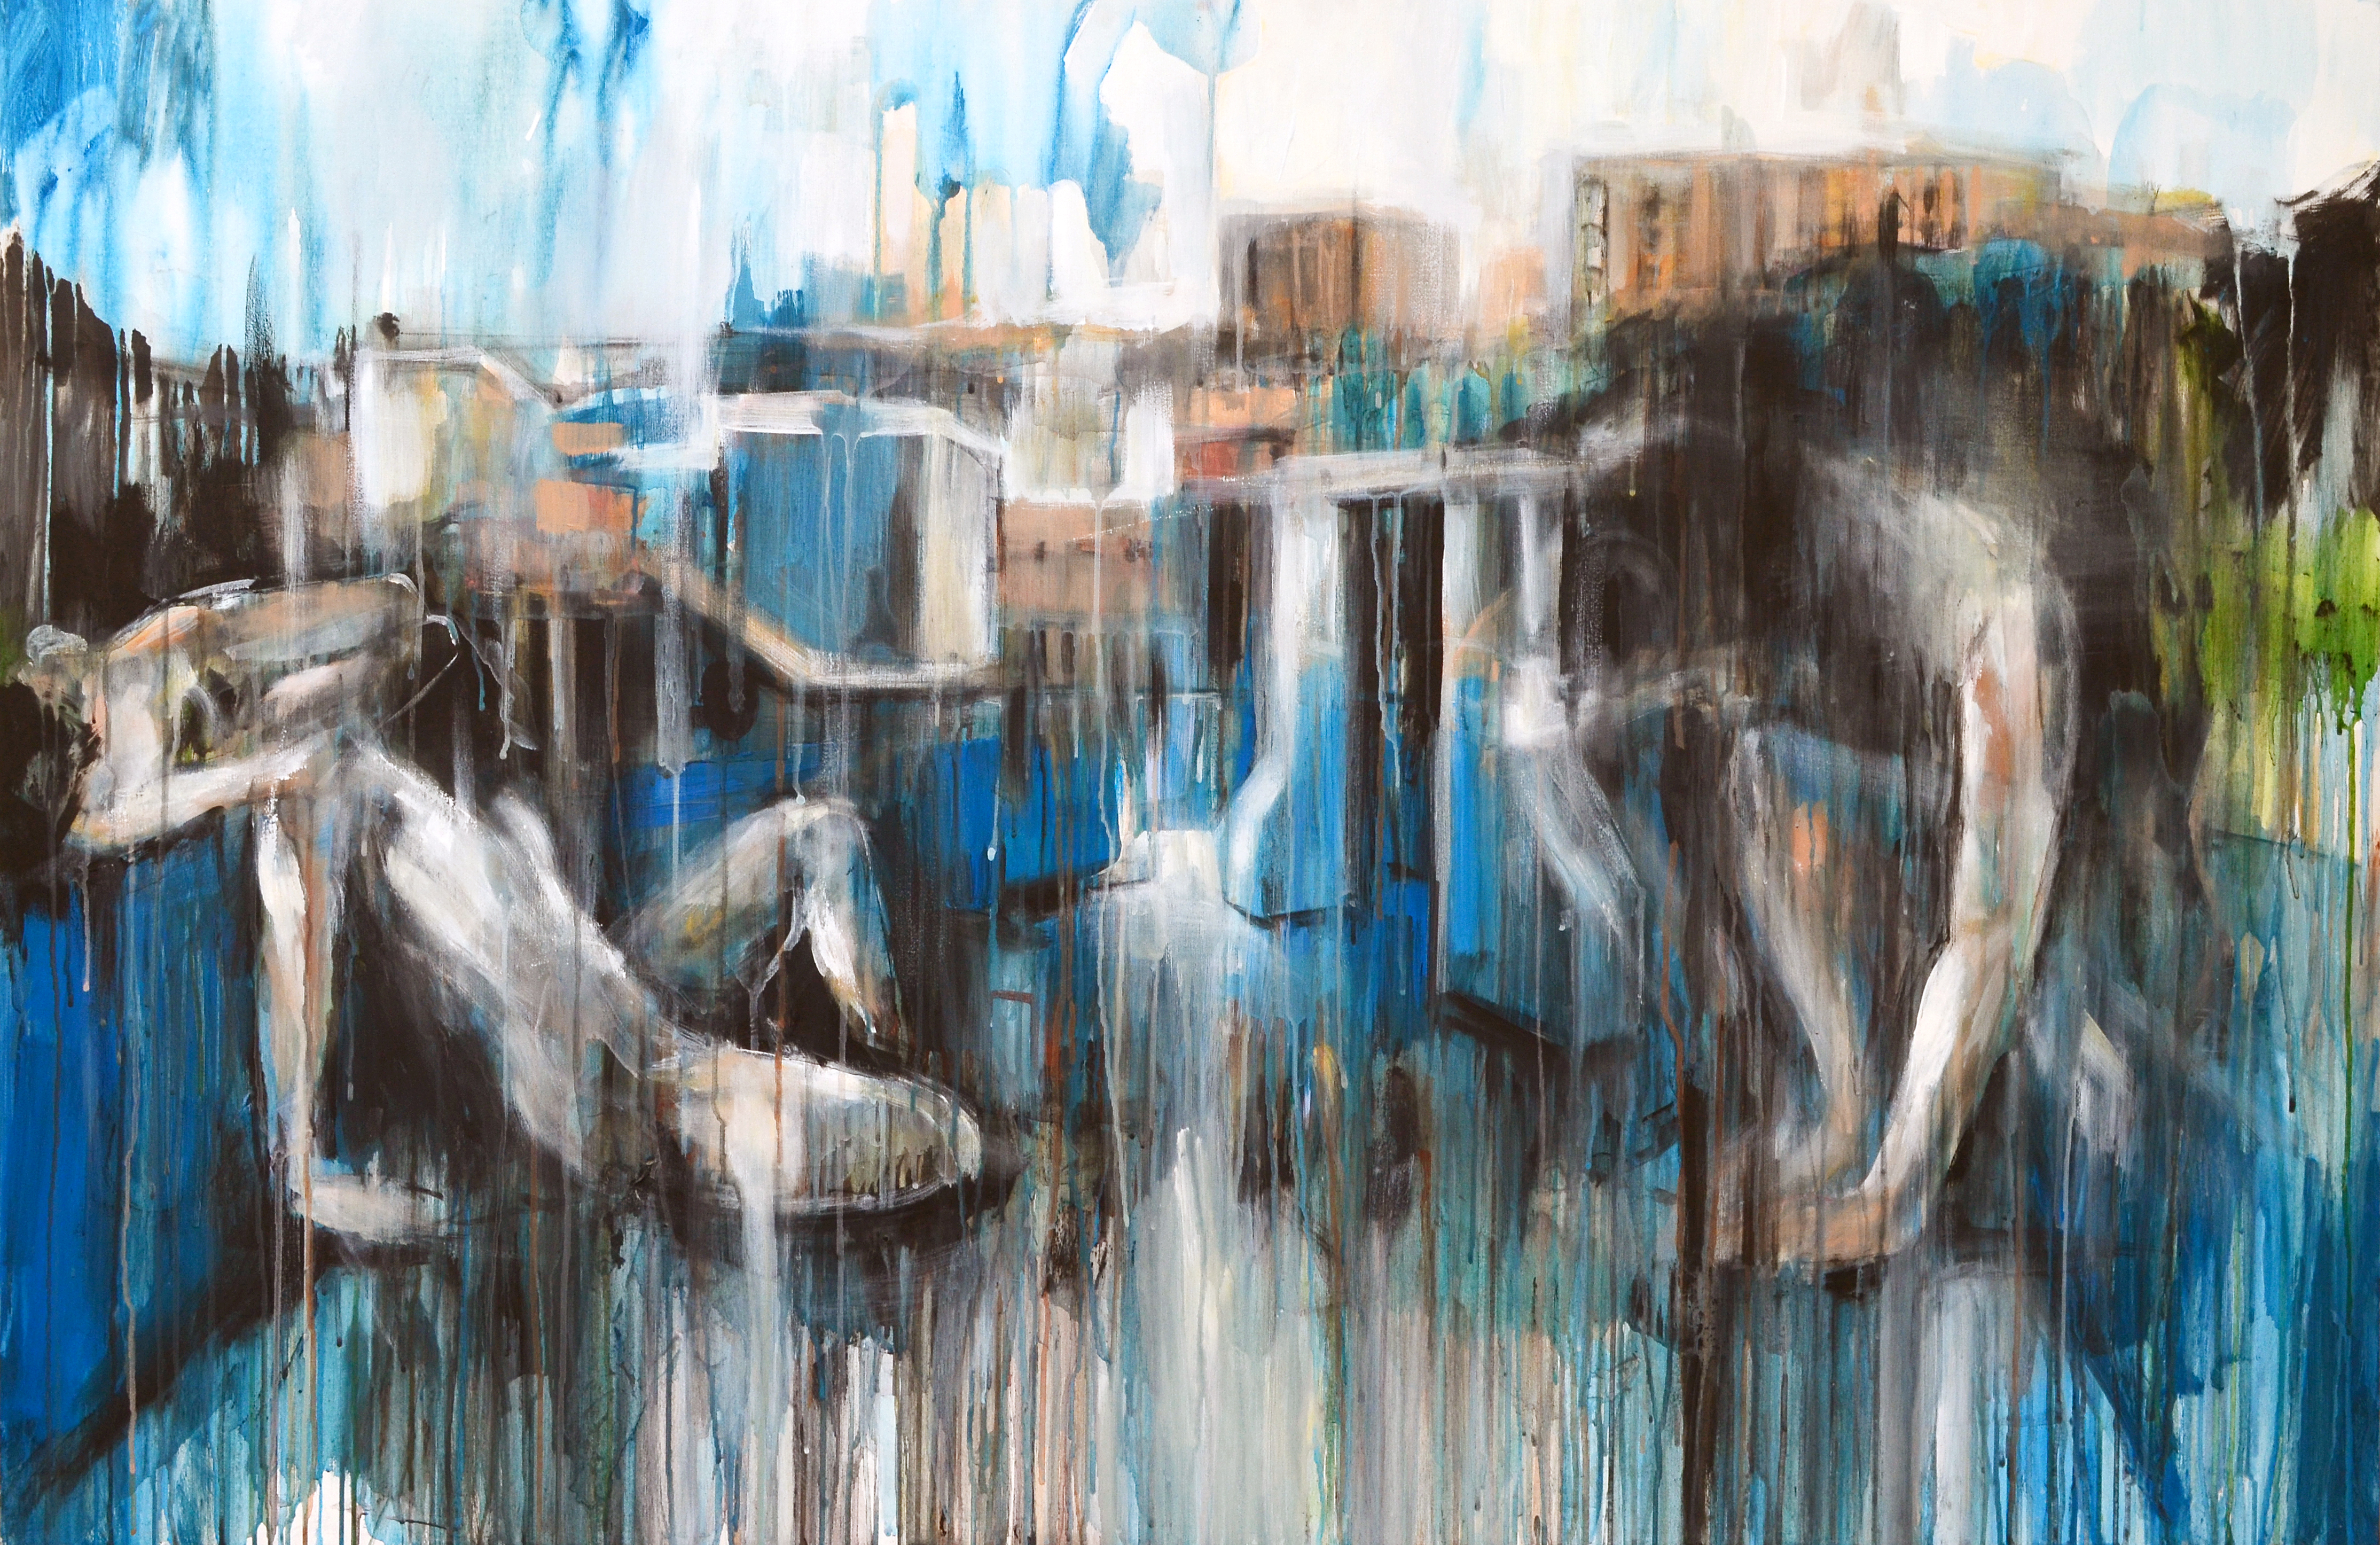 The Aesthetics of Disappearance - White Rocks - 150x100cm